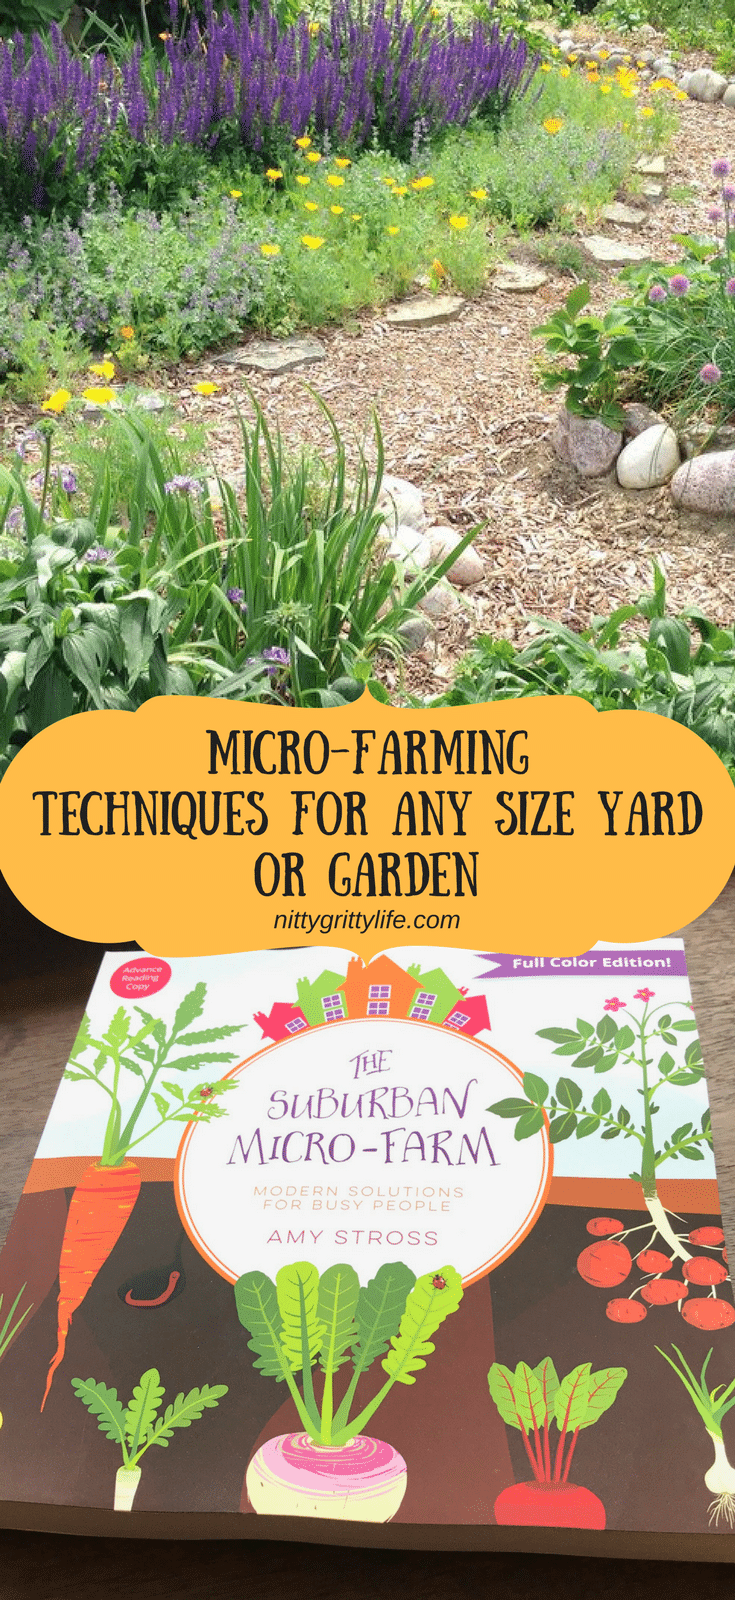 No matter the size of your yard or garden, micro-farming techniques from The Suburban Micro-Farm book can offer productive and attractive solutions to maximize your efforts! #microfarm #microfarming #permaculture #garden